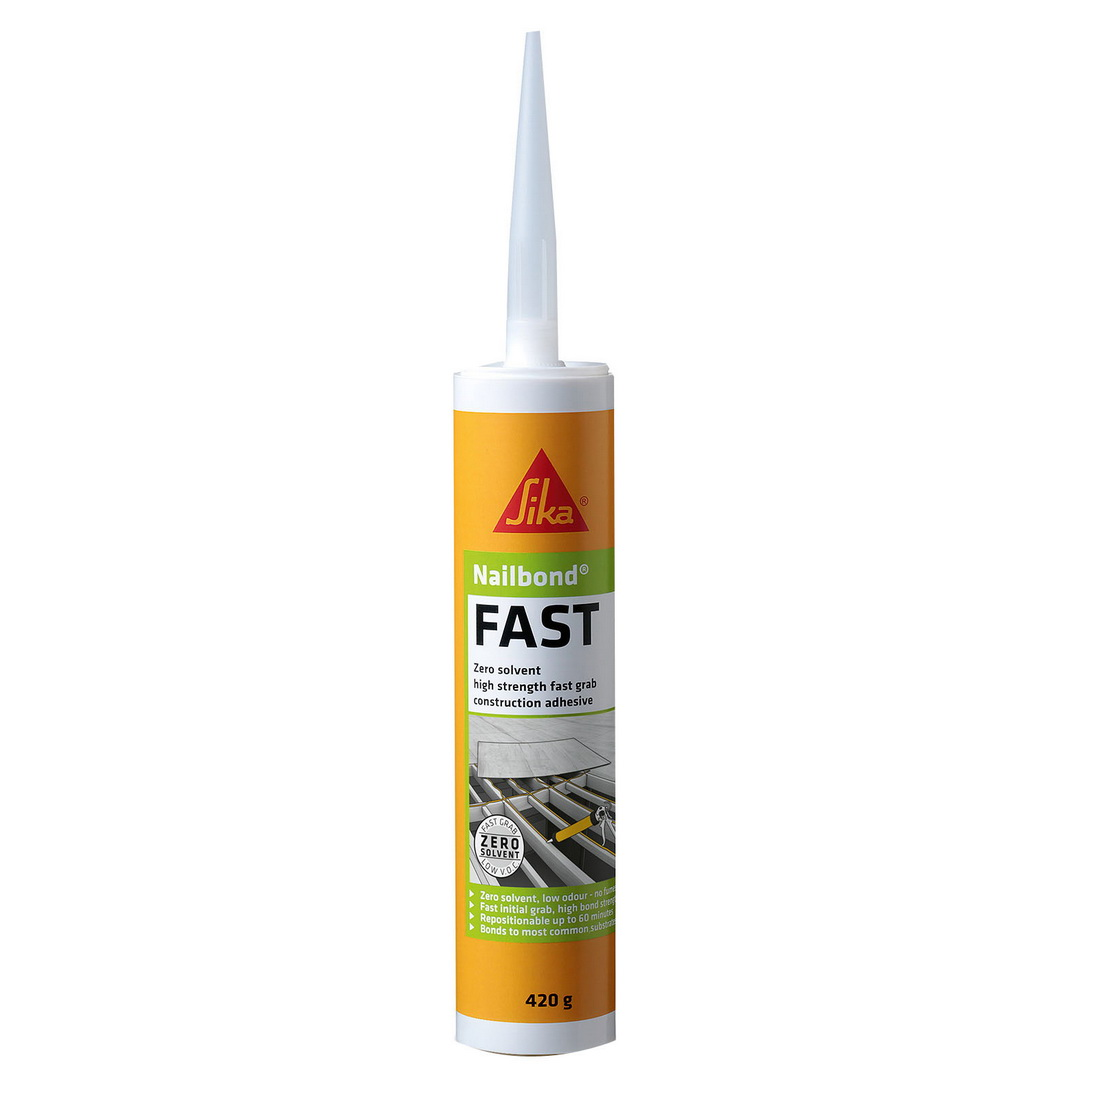 Nailbond Fast 420g Multi-purpose Construction Adhesive Beige